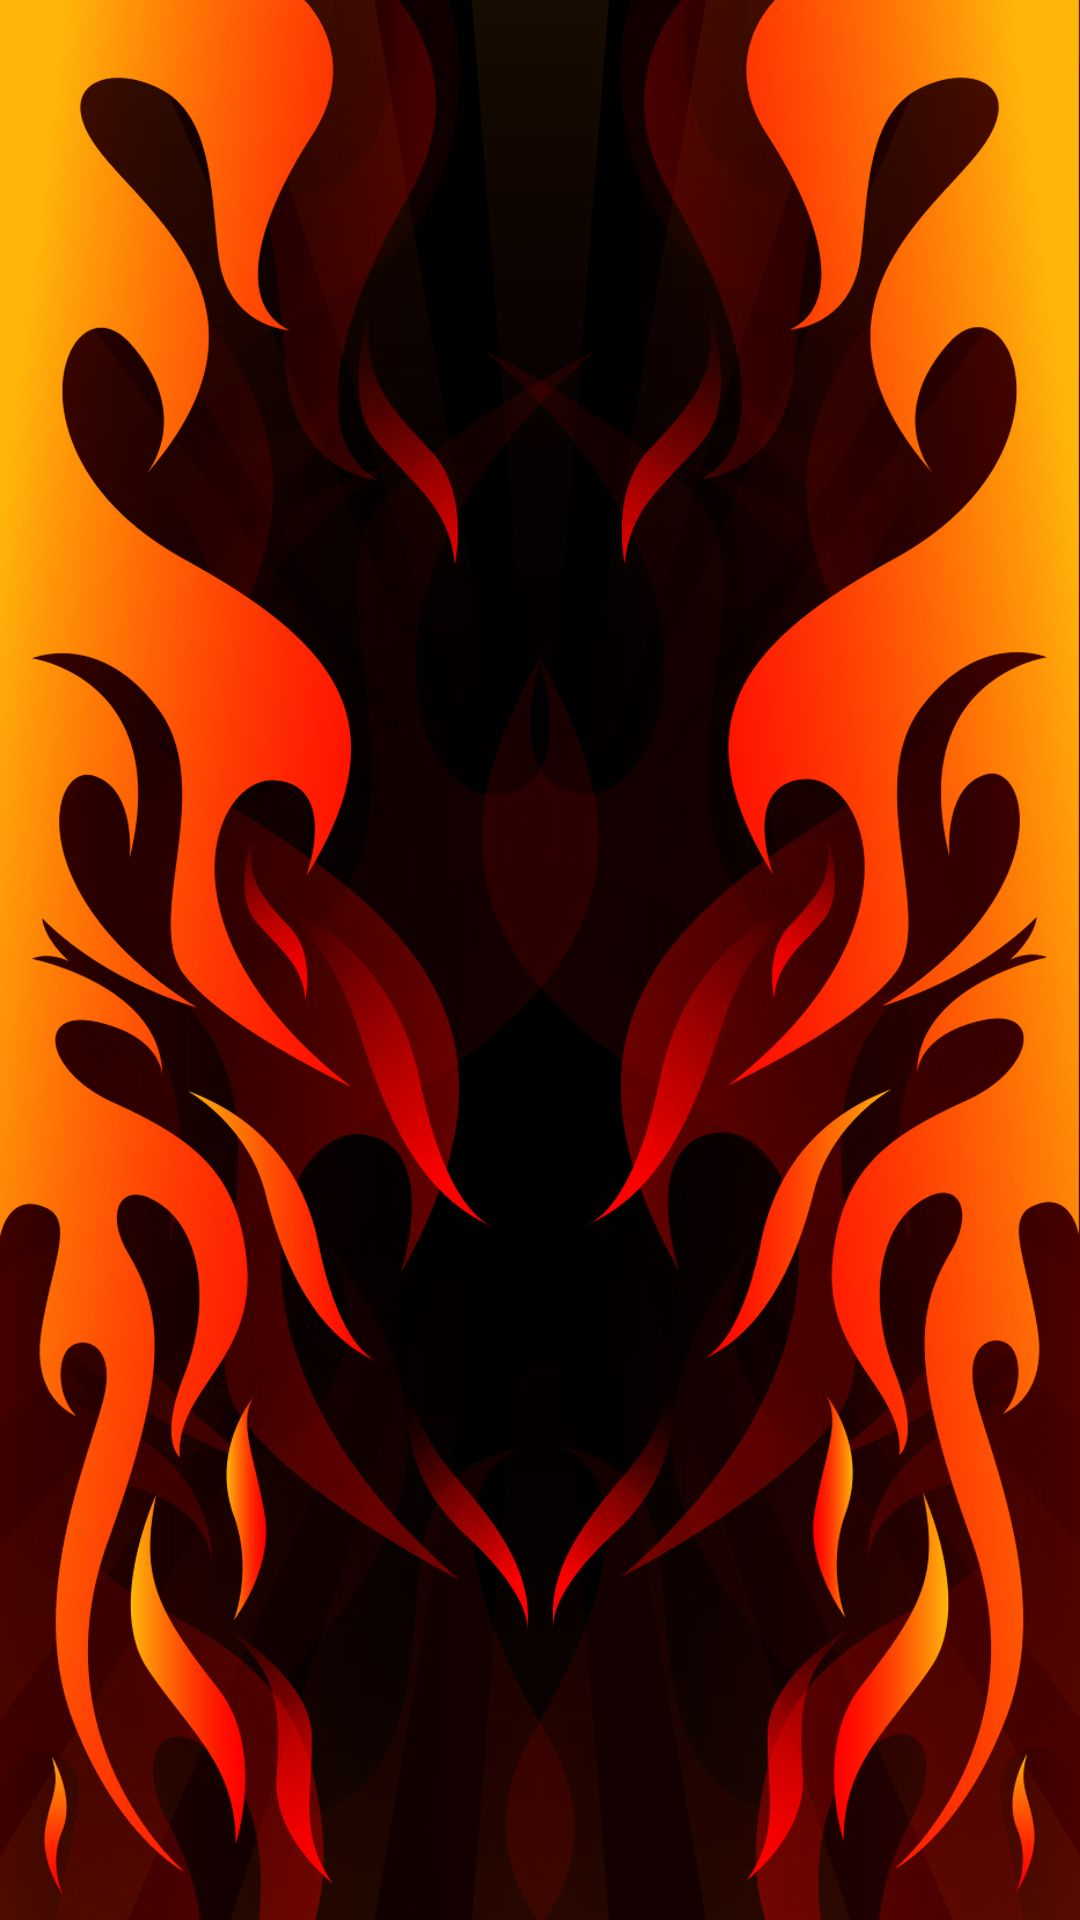 1080x1920 Fire Phone Wallpaper - Ultra Hd Fire Wallpaper Hd (#126714 ...